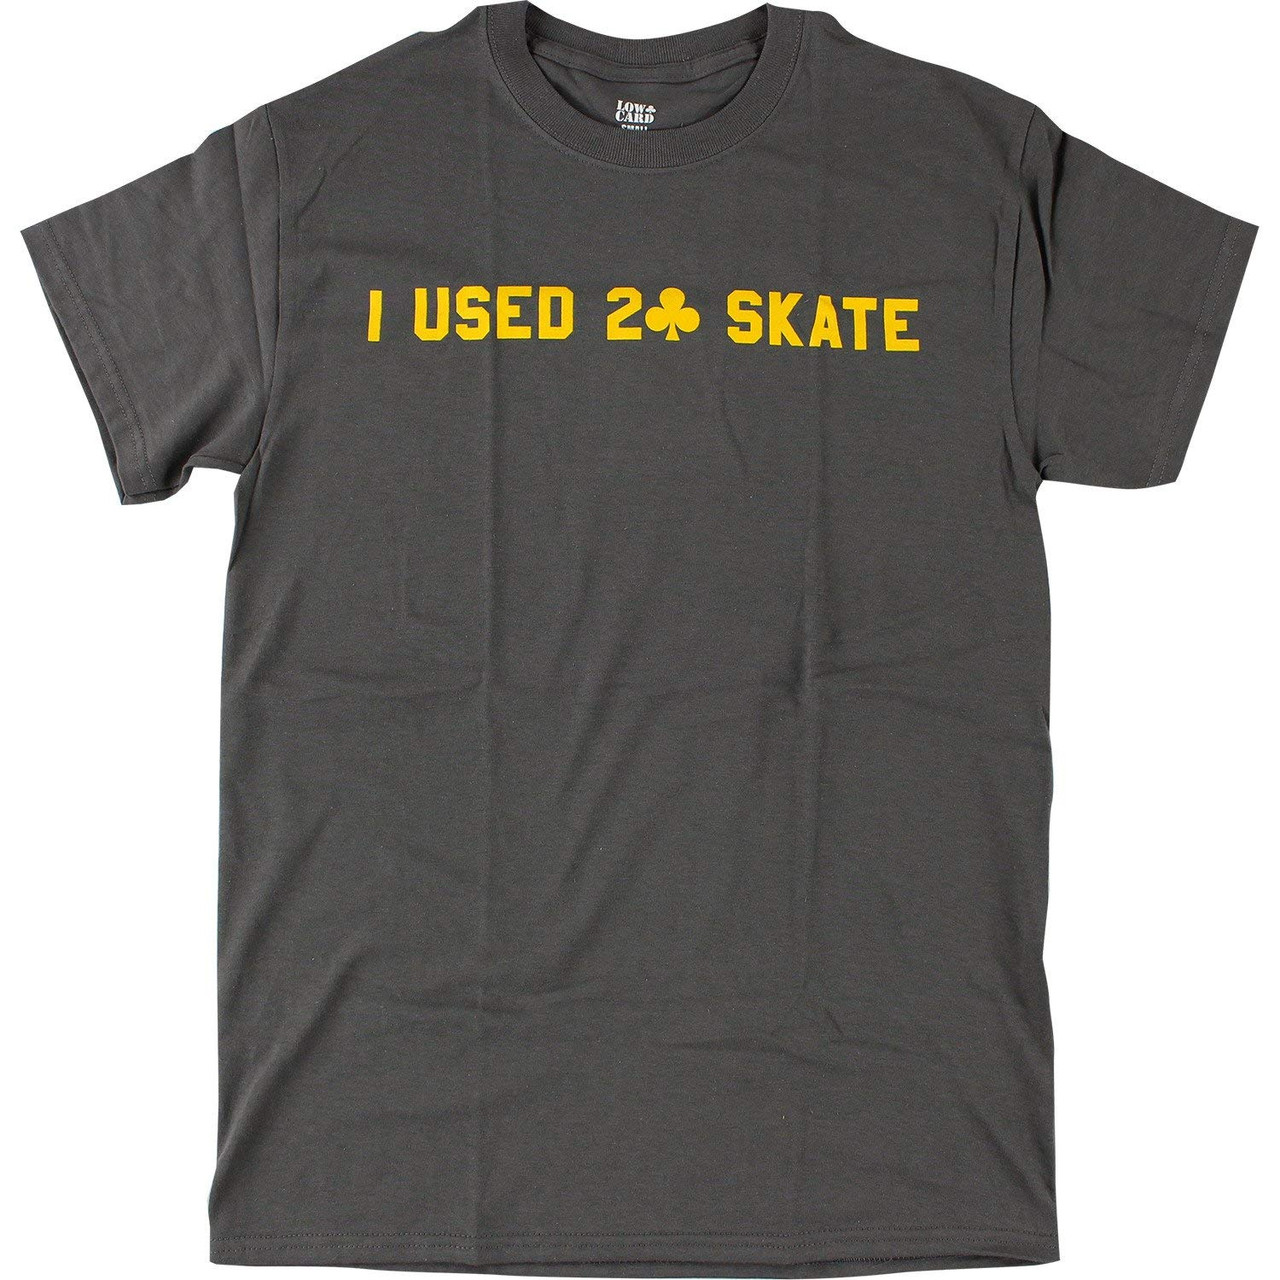 4a6a14b9f1e9 ... Clothing; Lowcard Shirt I Used 2 Skate Grey. Image 1. Click to enlarge